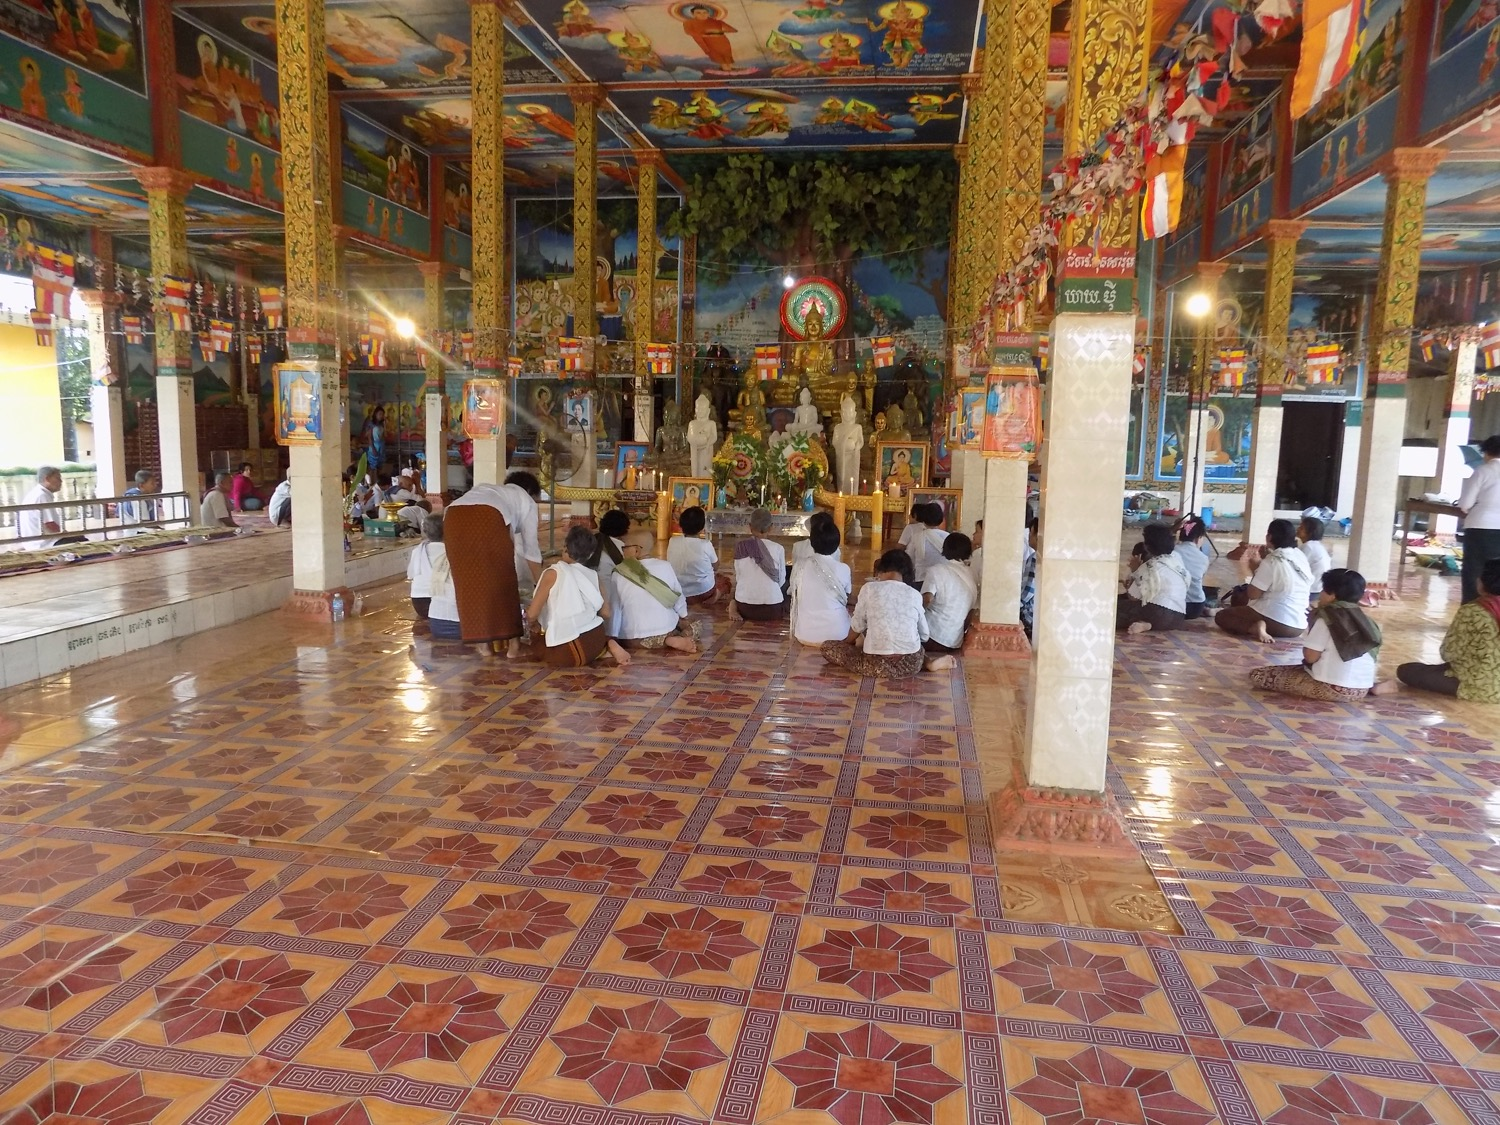 Sometimes after school in the morning, Narak goes to the pagoda to pray or to see some of his friends perform.